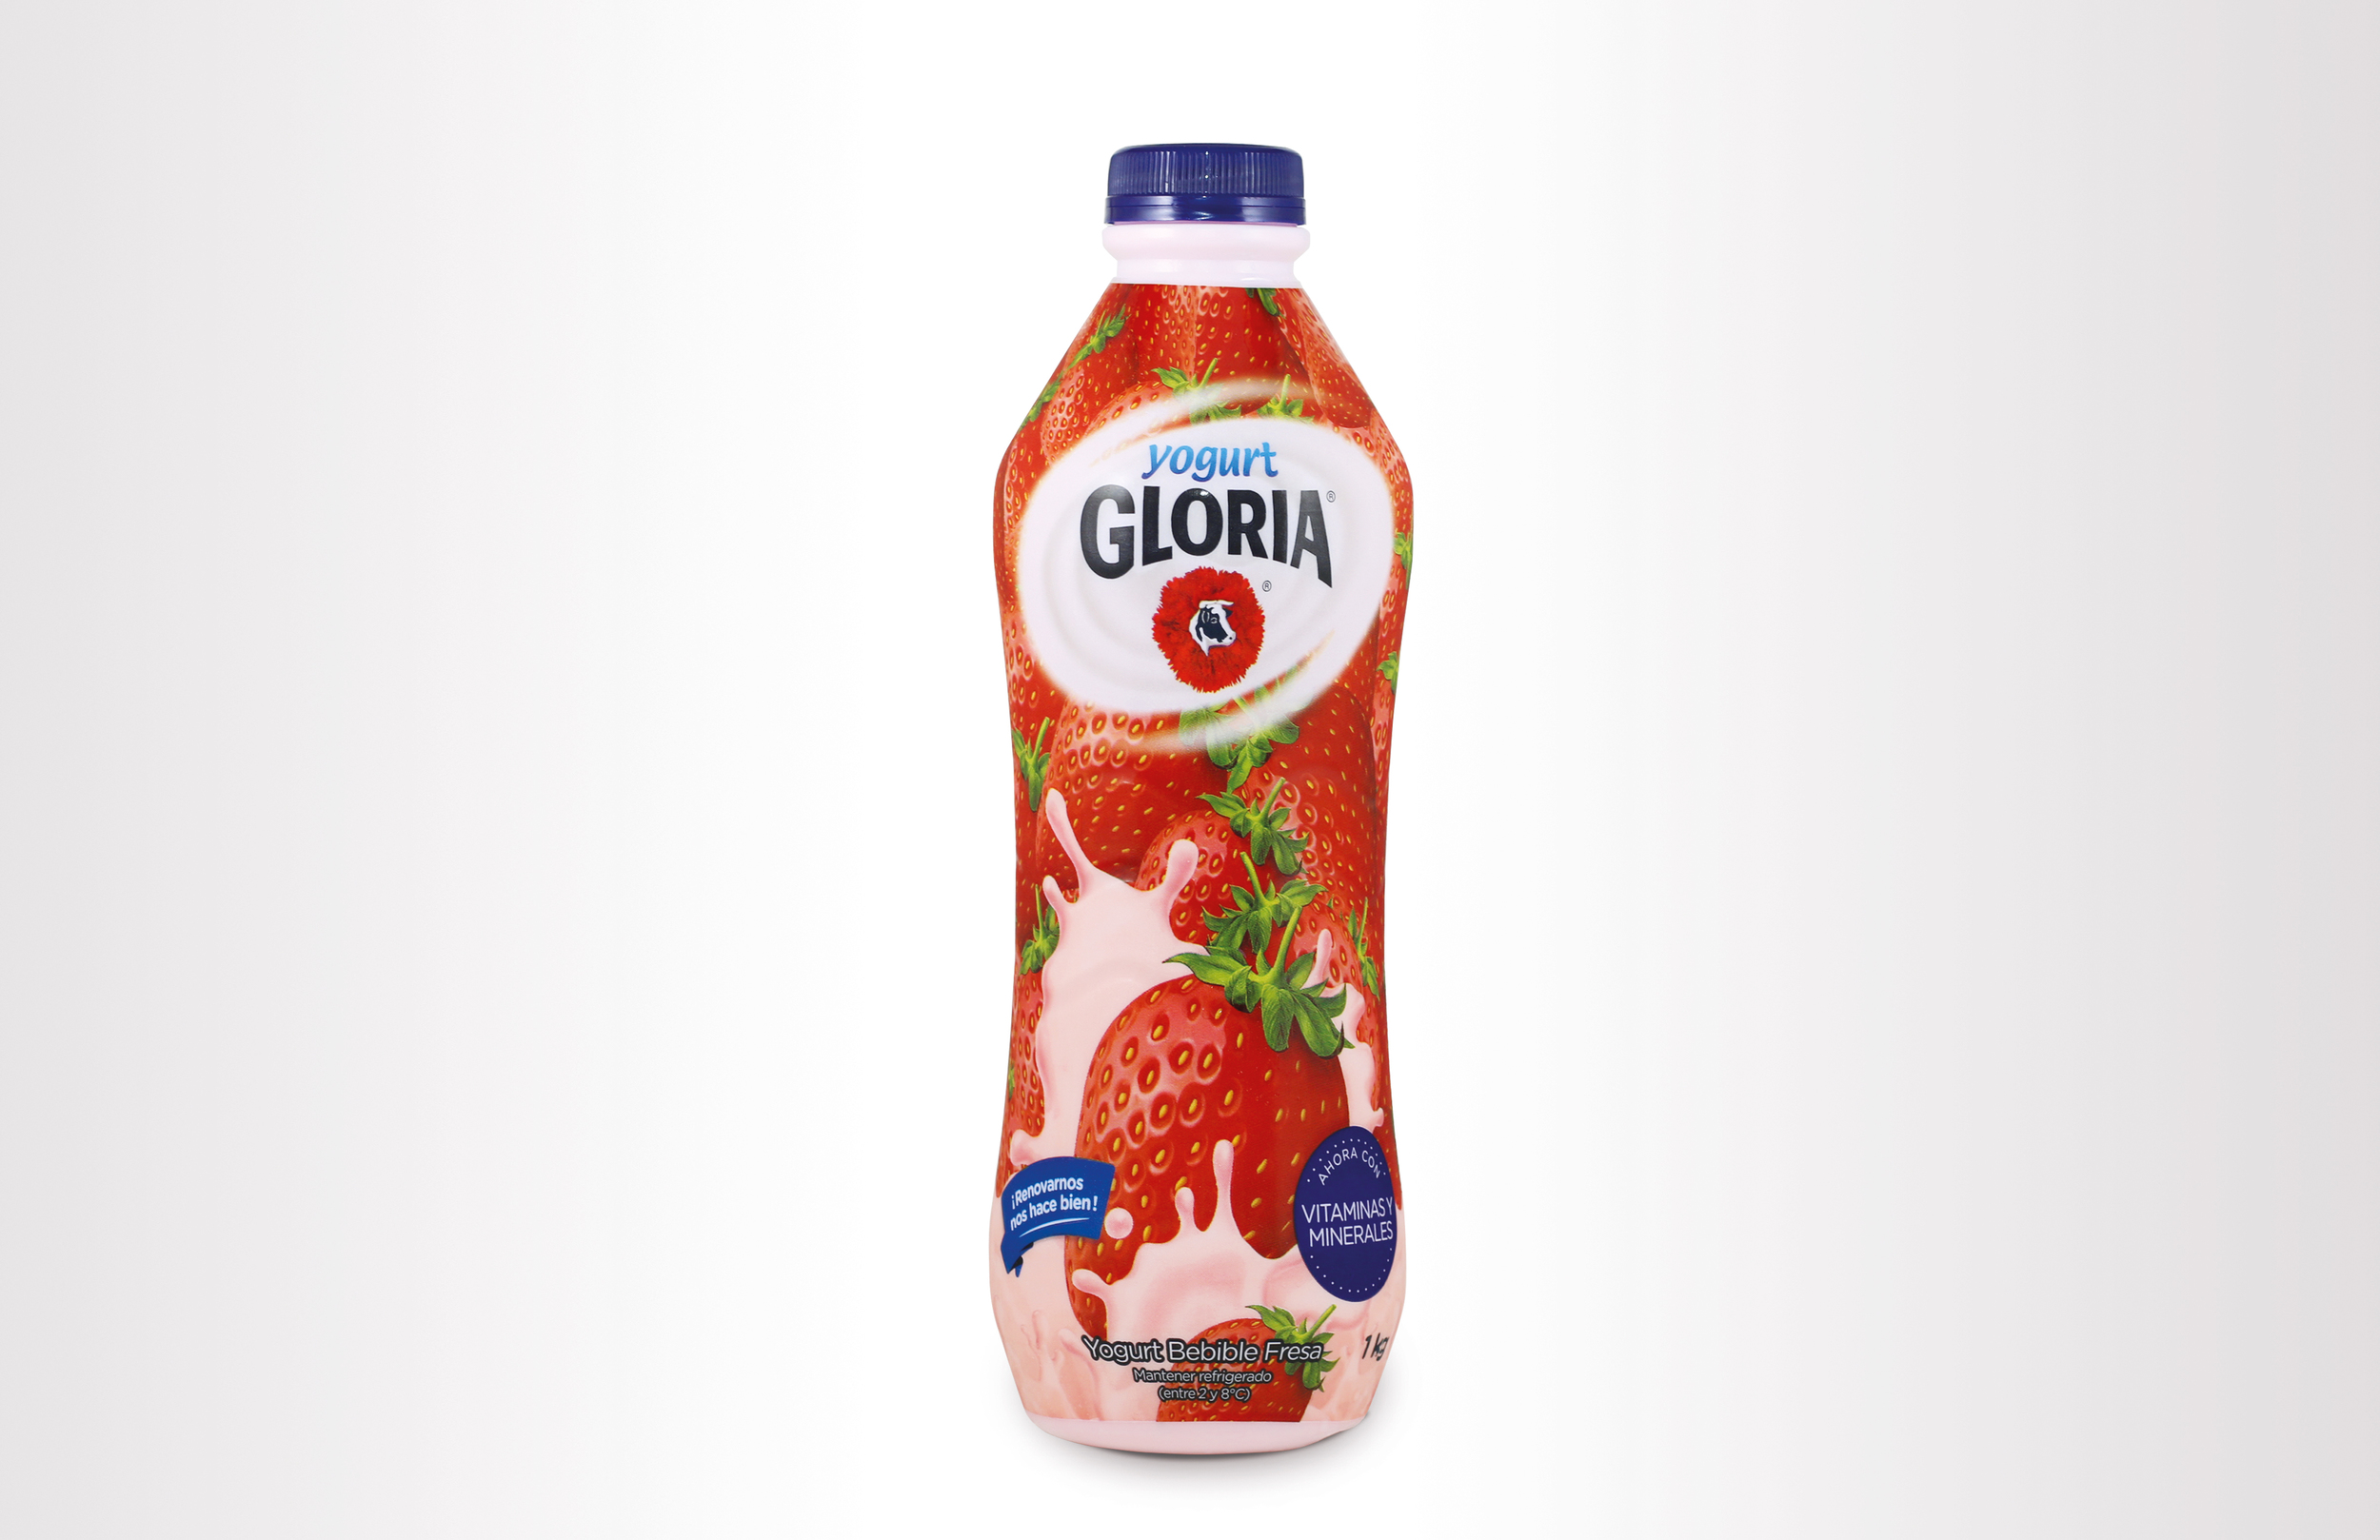 yogurt_gloria_retocada.jpg